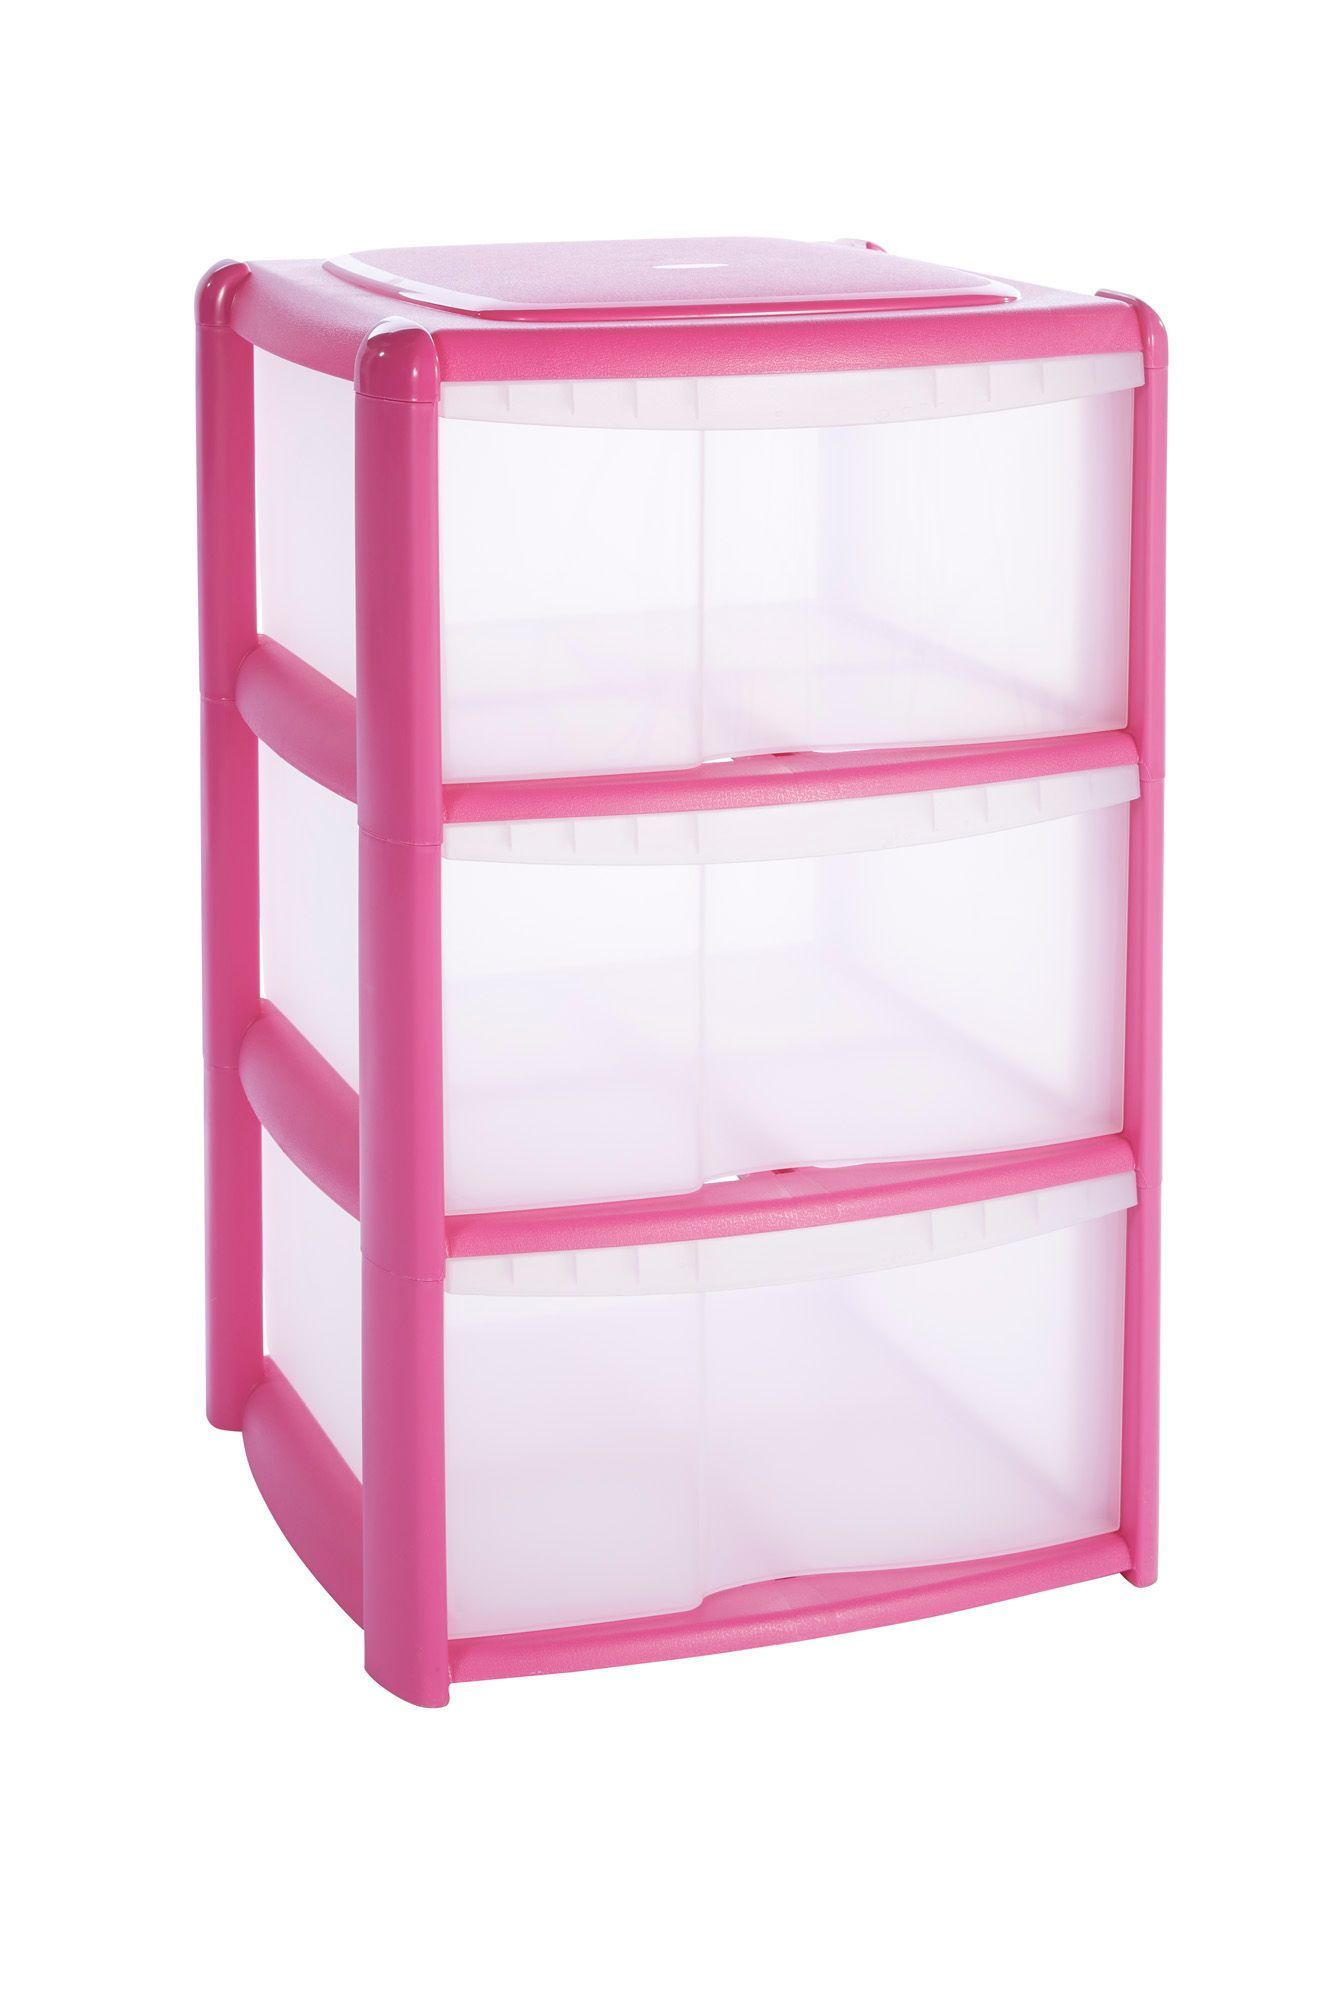 b q pink plastic 3 drawer tower unit rooms diy at b q furniture pink plastic plastic. Black Bedroom Furniture Sets. Home Design Ideas